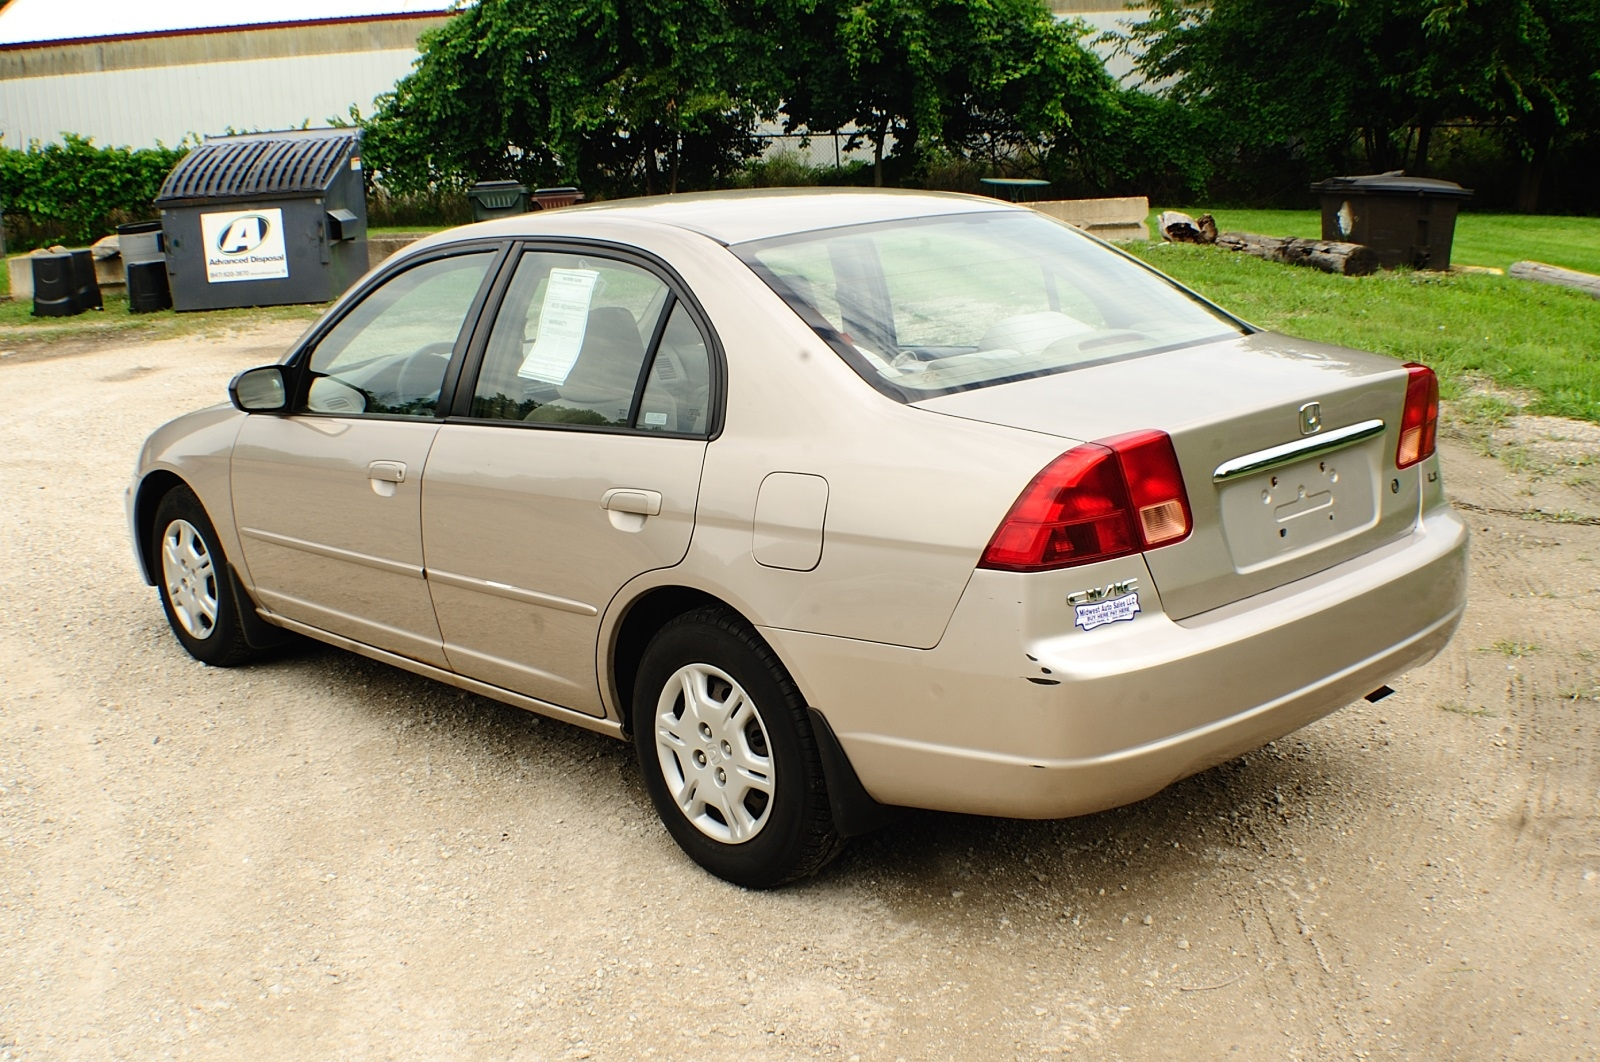 2002 Honda Civic LX Tan Sedan Used Car Sale Fox River Grove Grayslake Volo Waucanda